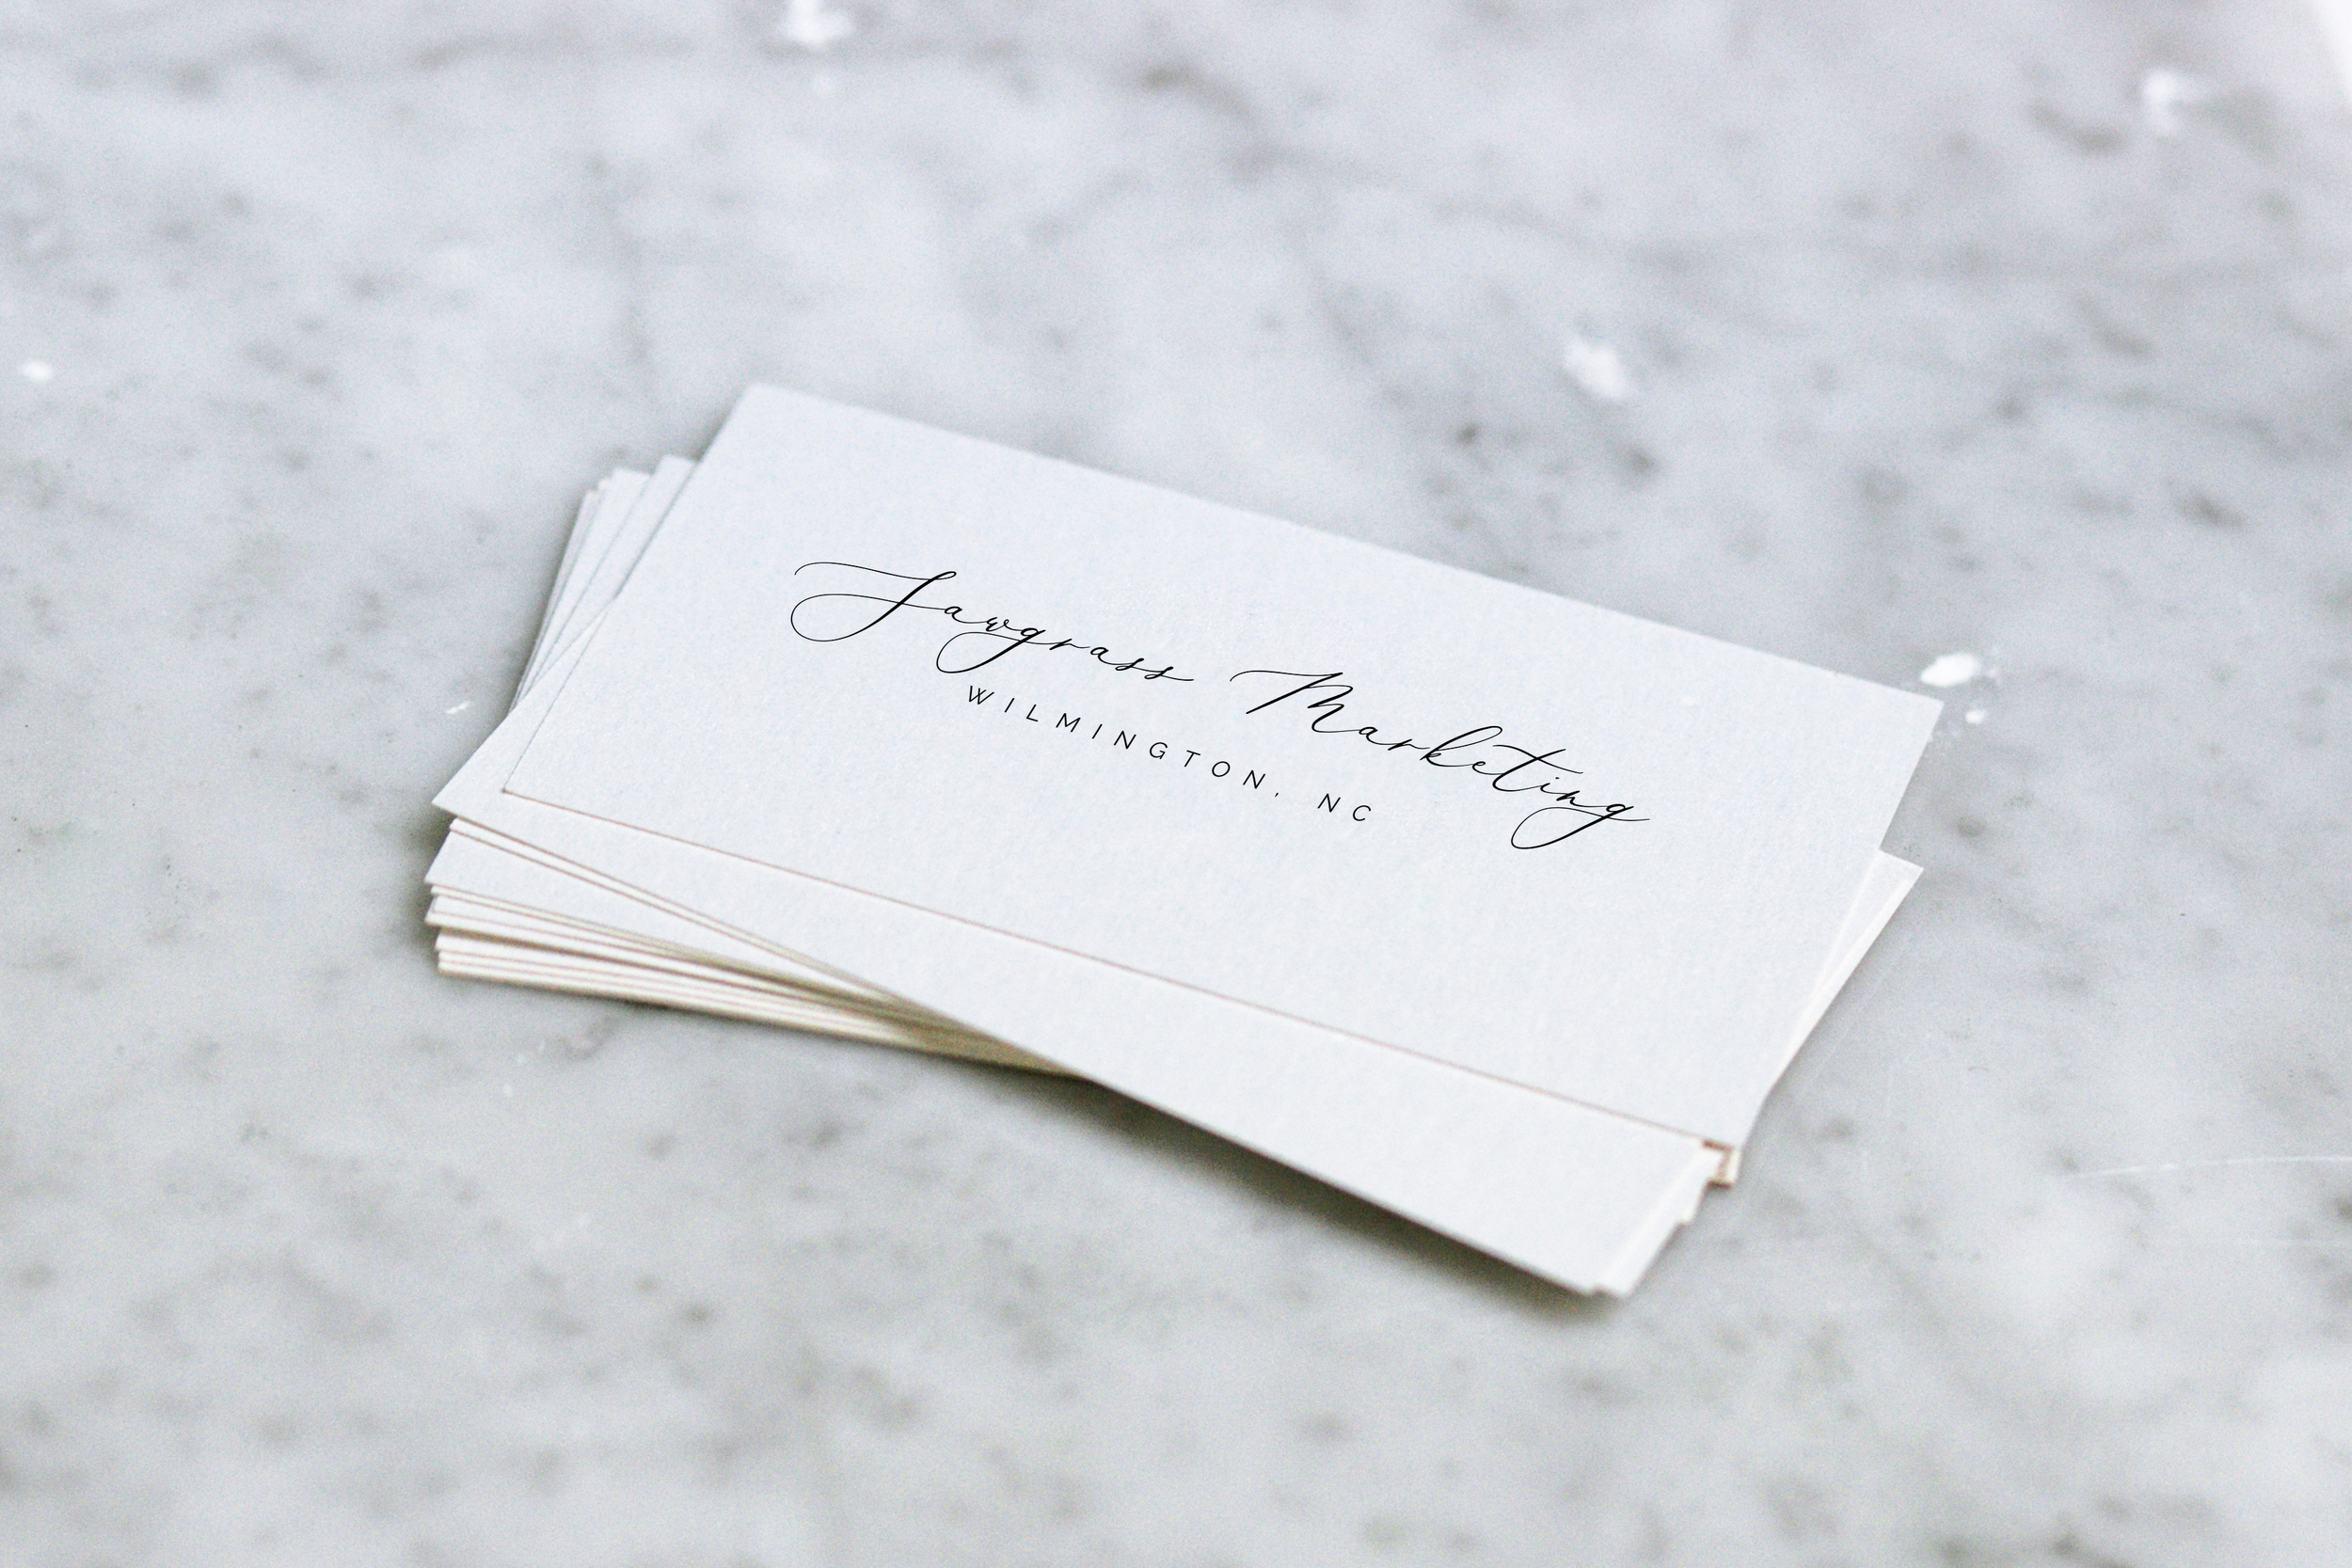 Brand Development - Your brand should tell your company's story and evoke an emotional connection with your consumers. Take pride in handing out your business card.